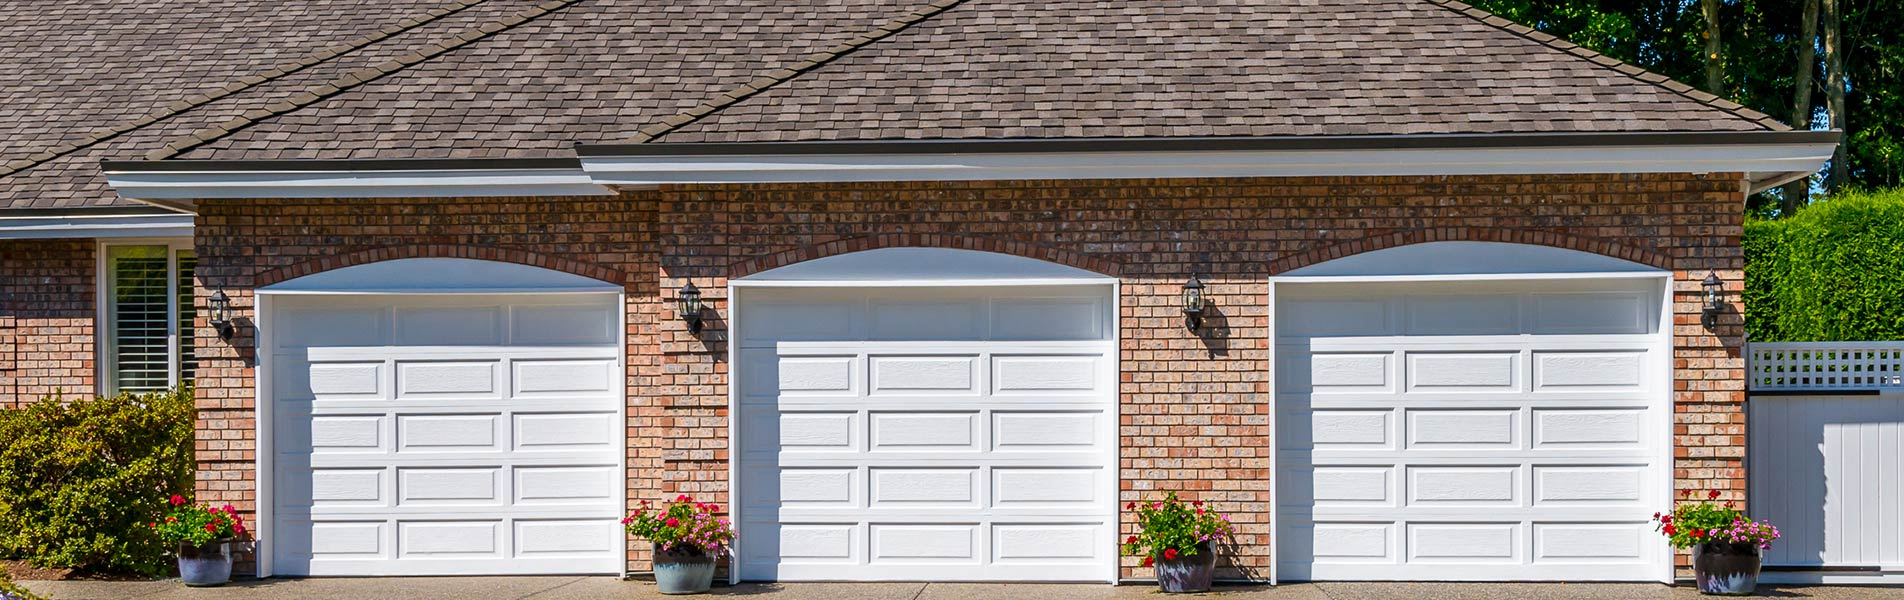 Eagle Garage Door Service Framingham, MA 508-762-4594